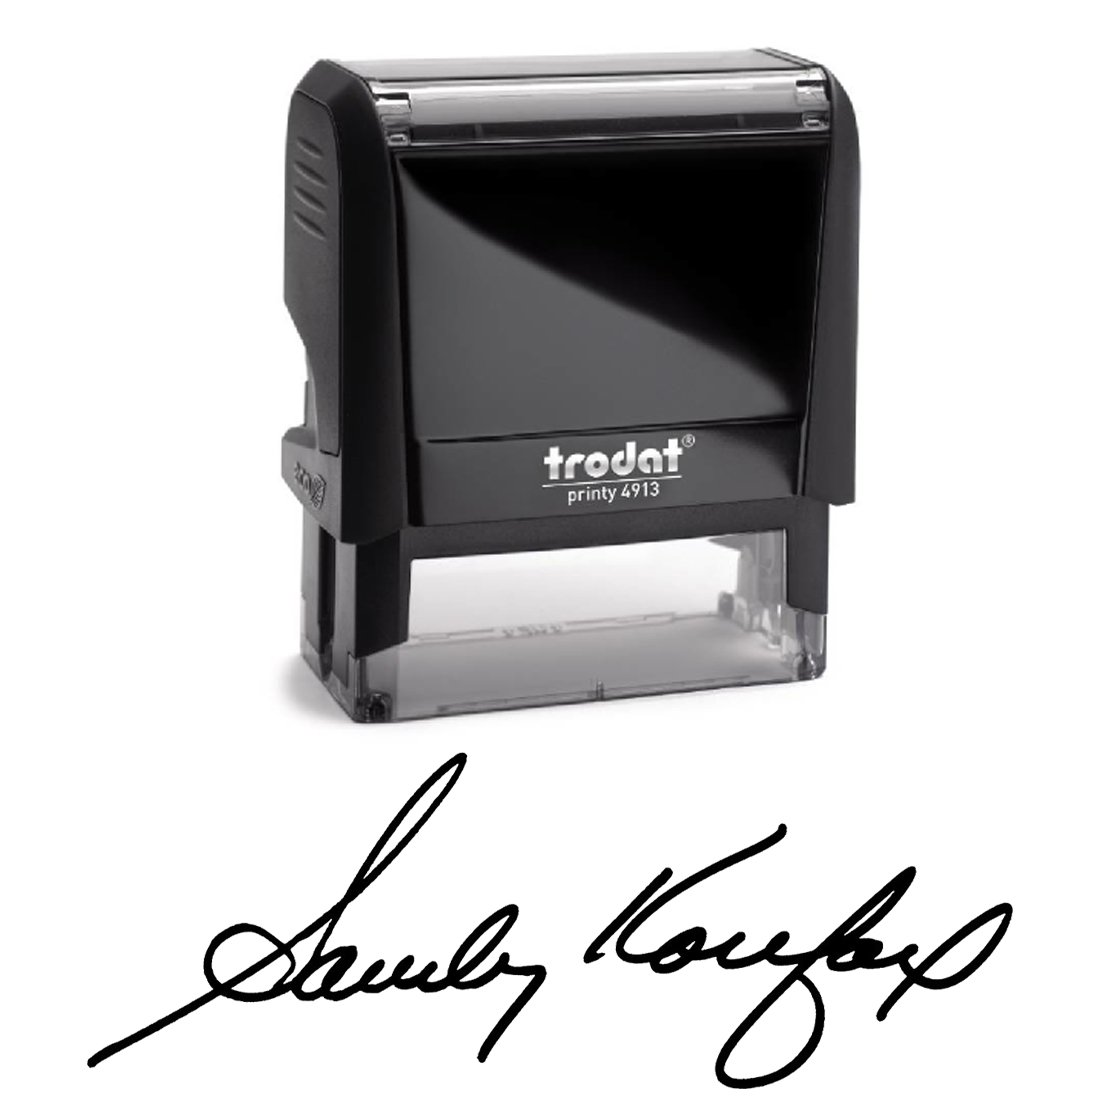 Black Ink, Signature Stamp, Self Inking. Your Own Signature Customized into the Best Quality Stamper. Great For Regular Signing, Sign Off Checks, Contracts, Certificates… Color Options Available.